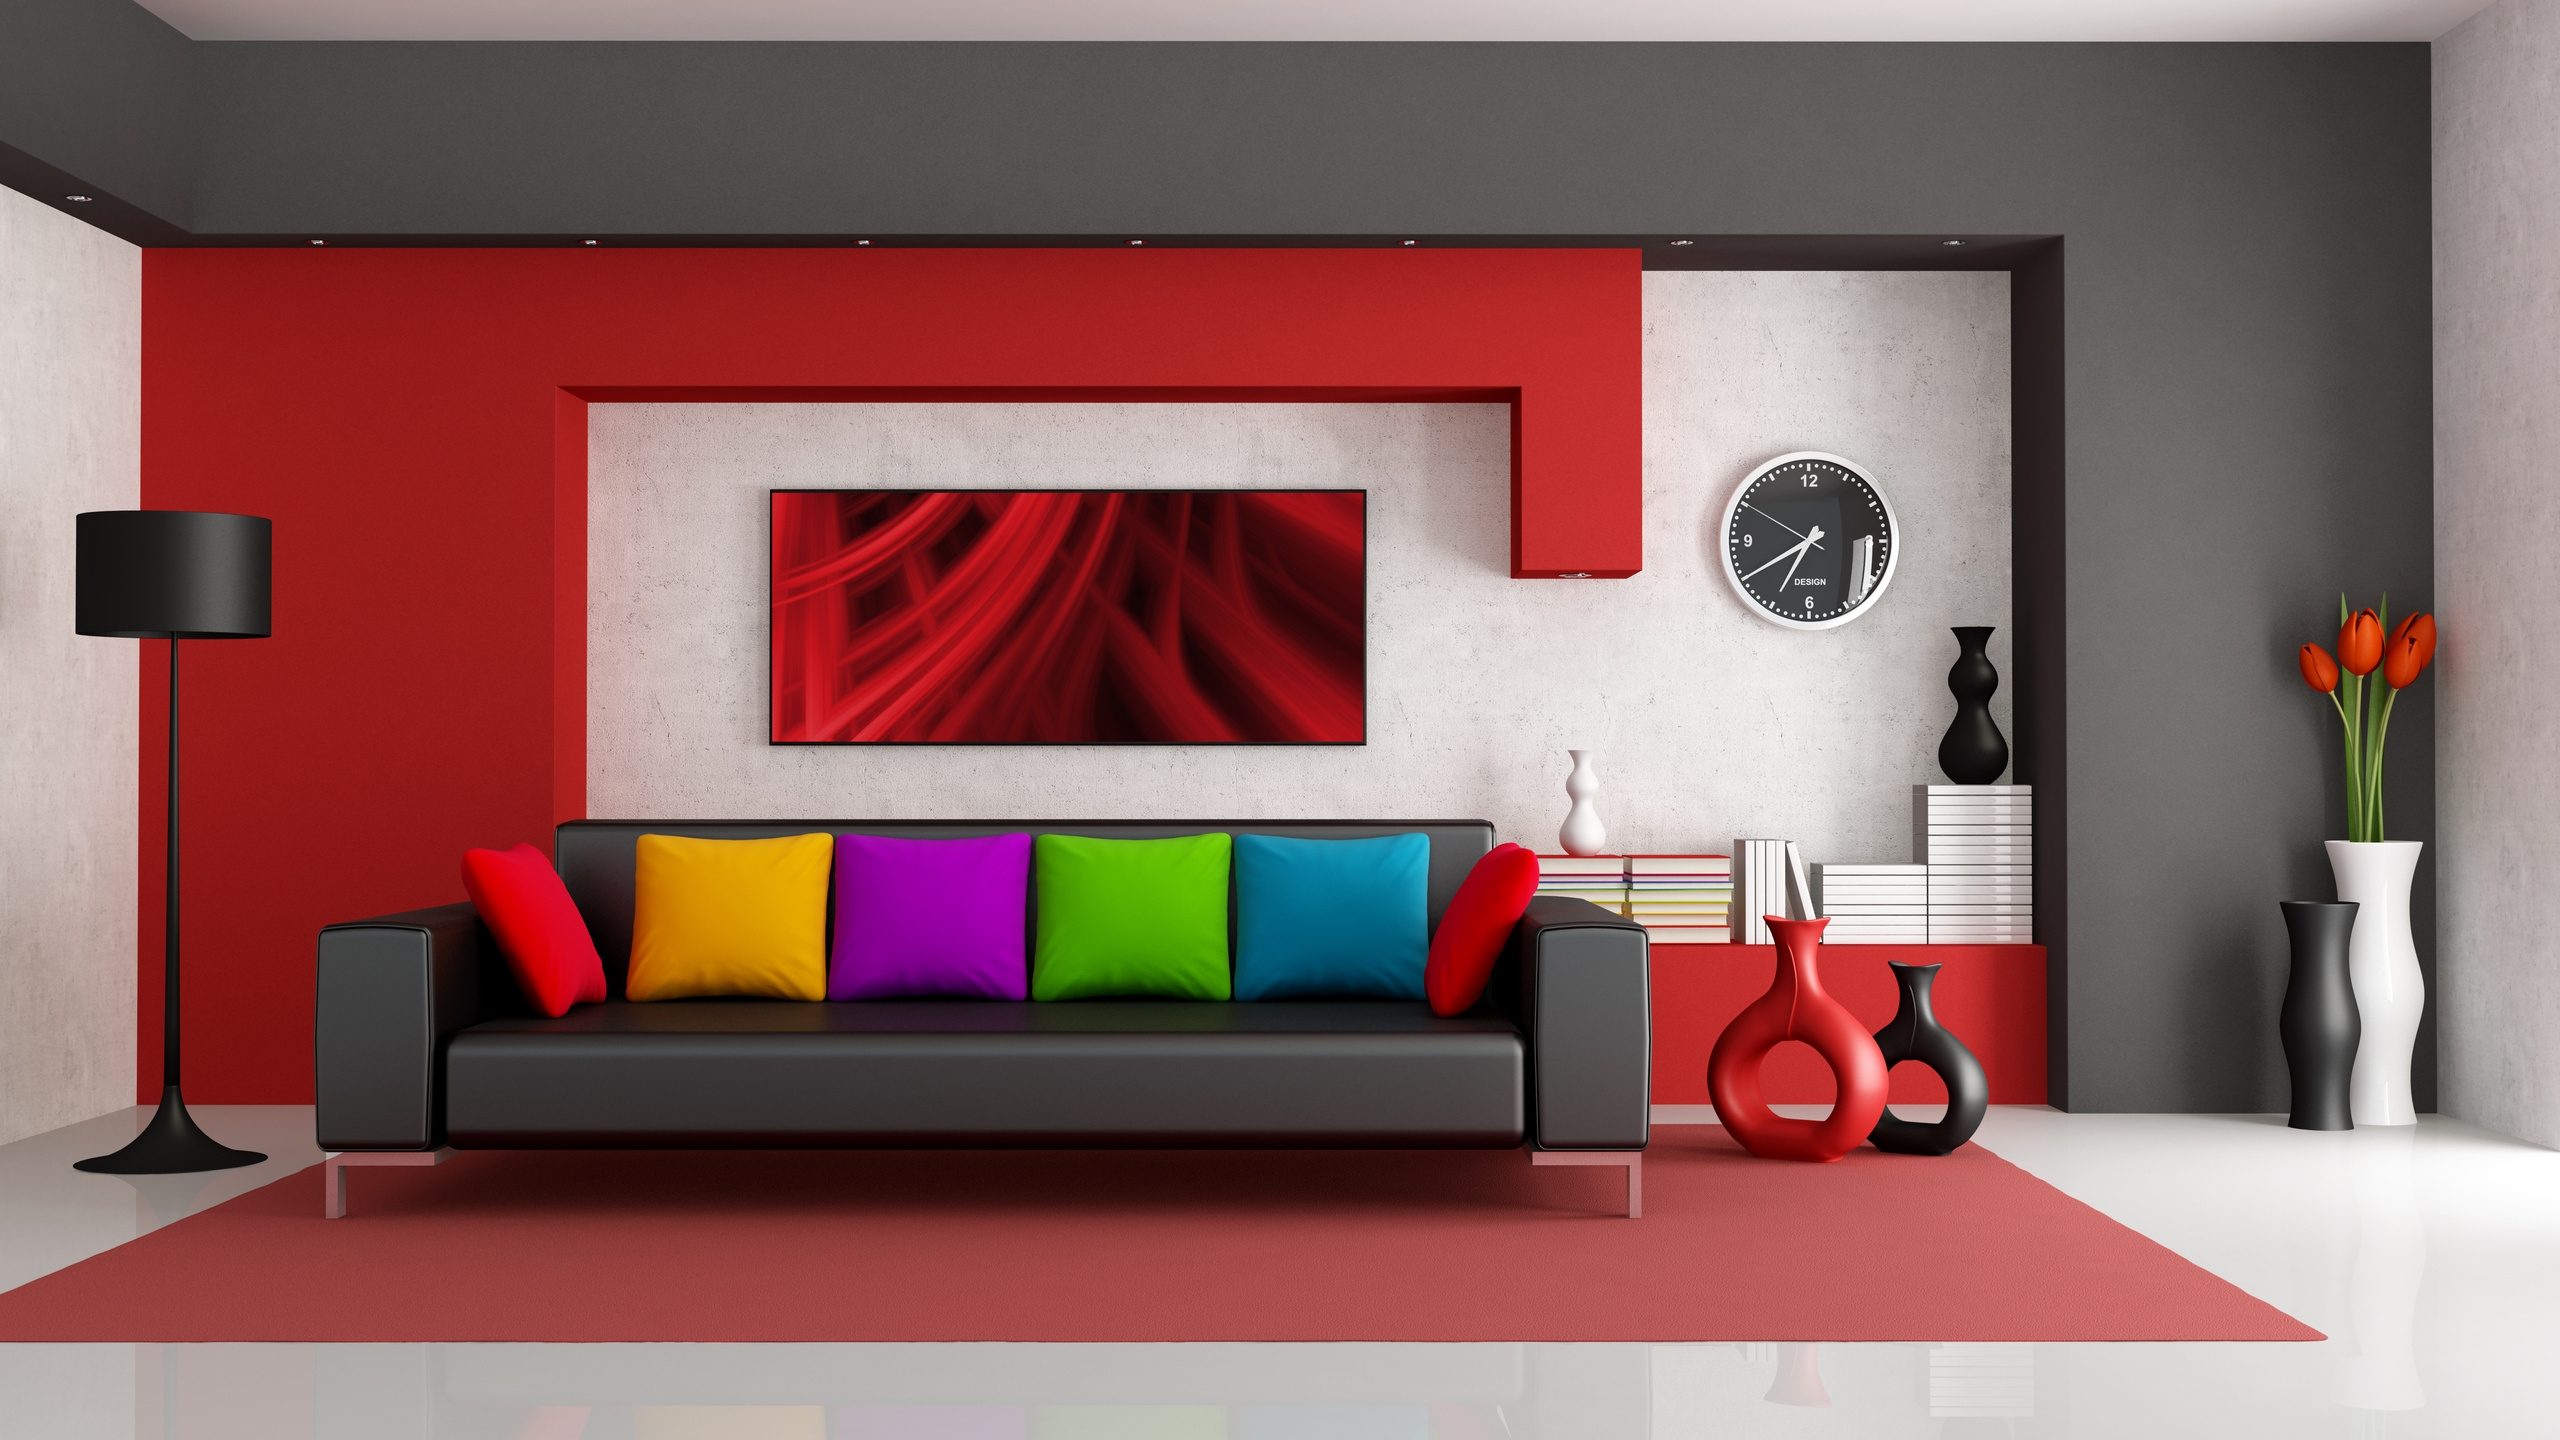 Red Wallpaper Designs For Living Room Red Wallpaper Ideas For Living Room Yes Yes Go